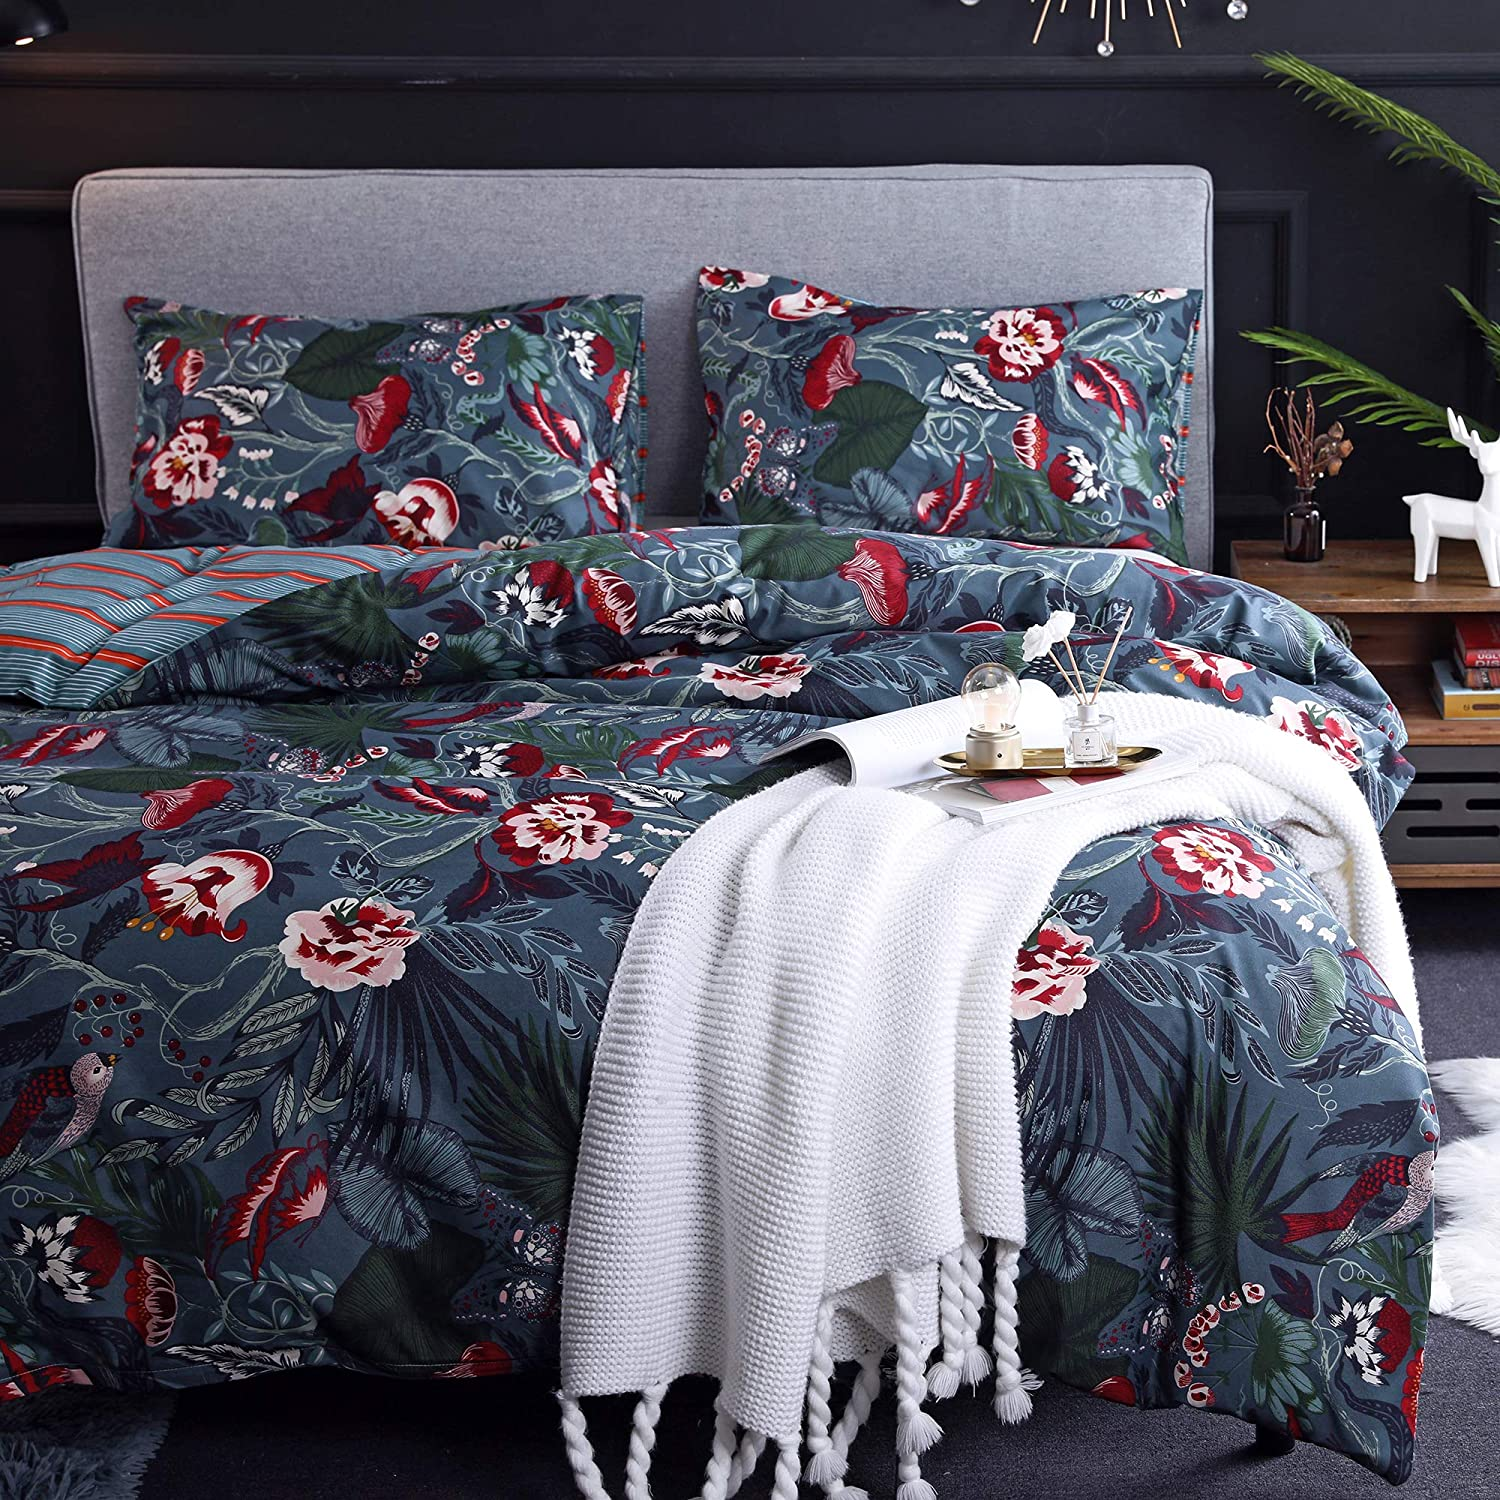 NOKOLULU Flower and Leaves with Print Directly managed store Set Bird Max 88% OFF Duvet Cover